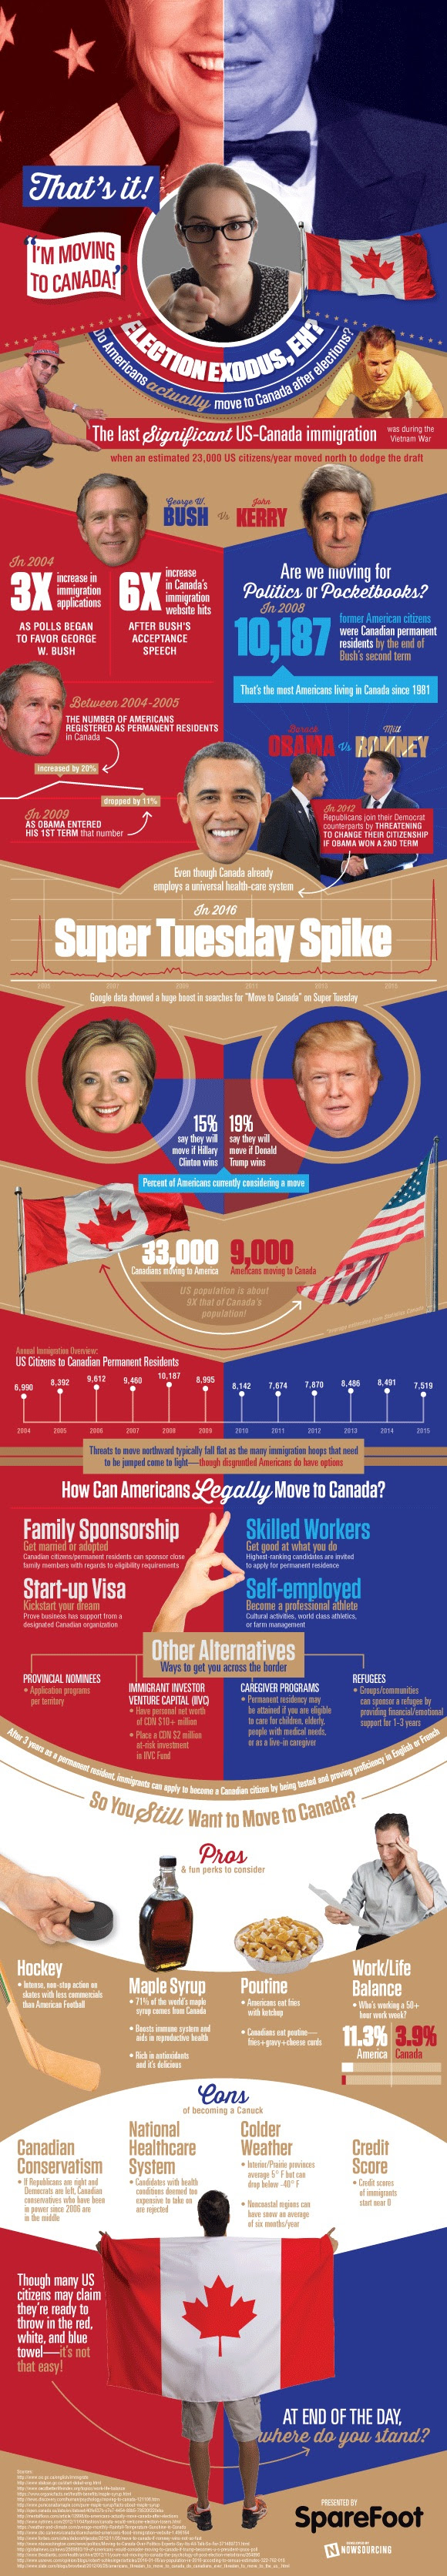 Moving to Canada? A Look At America's Election Exodus